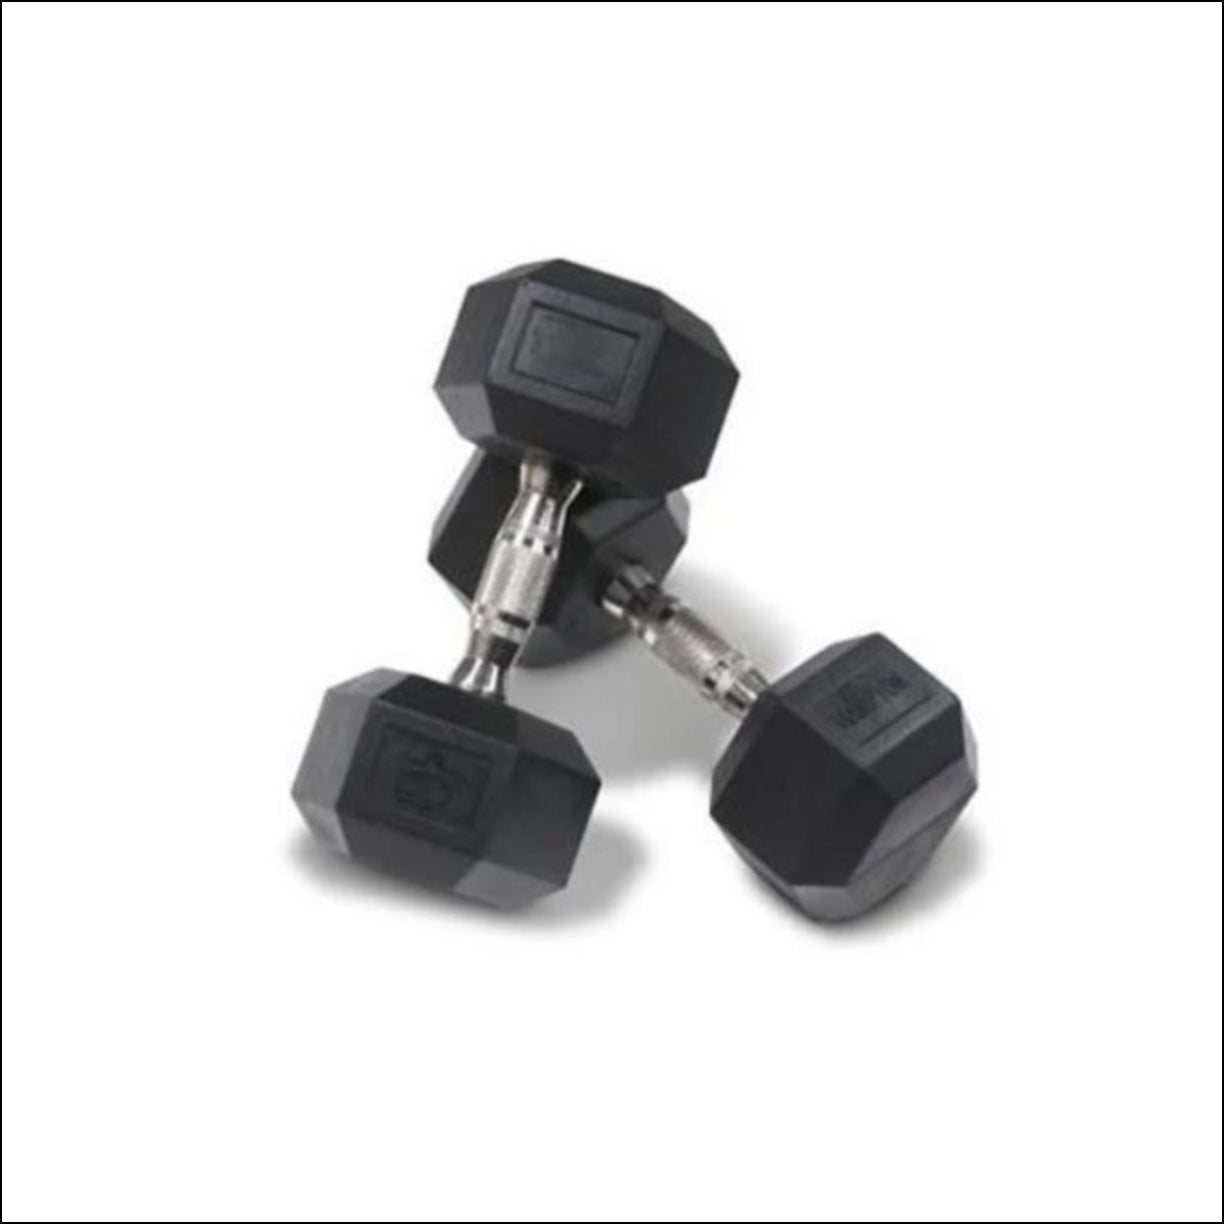 PAIR OF 35-kg RUBBER HEX DUMBBELLS  Muscle Motion Rubber coated hexagonal dumbbells with ergonomic handles are designed for increased comfort and improved durability. Rubber coating reduces noise improves life cycle of the product  (other finishes such as chrome and cast iron are subject to chipping and rust). Rubber coated dumbbells are also kinder on floor surfaces. The hexagonal shaped ends are designed to prevent the dumbbell from rolling on the floor or dumbbell rack.